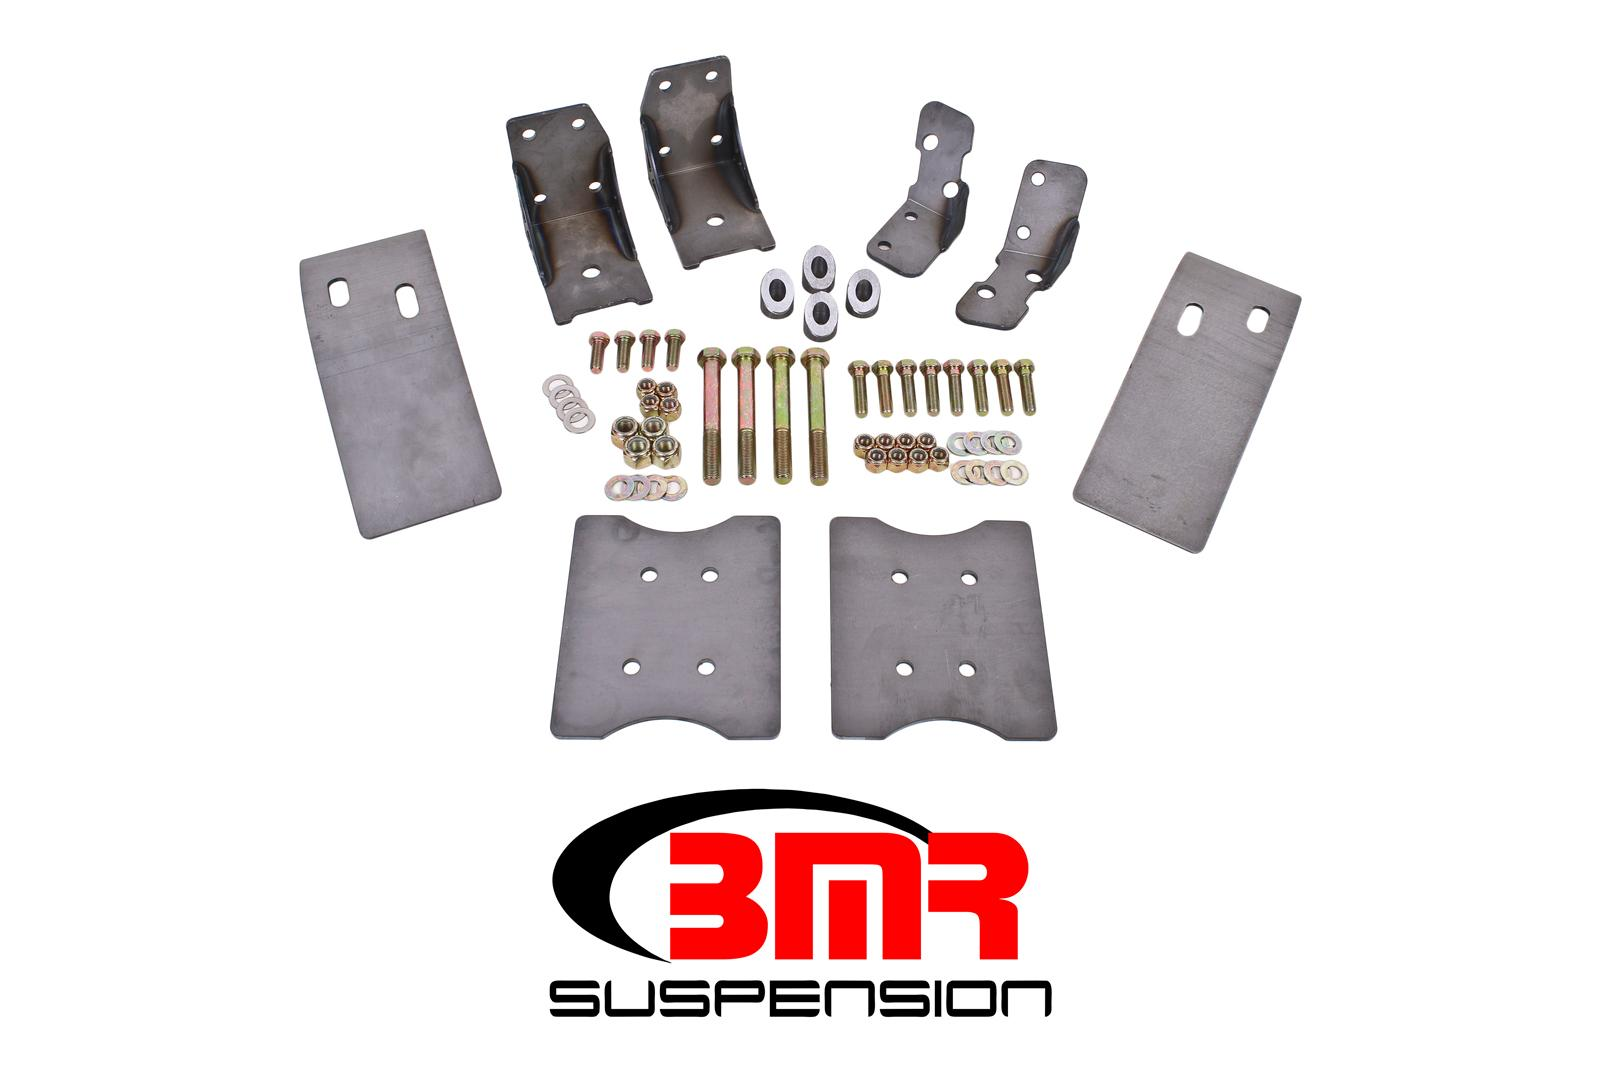 1979-2004 Ford Mustang BMR Suspension Plate Style Torque Box Reinforcement Plate Kit - Upper & Lower